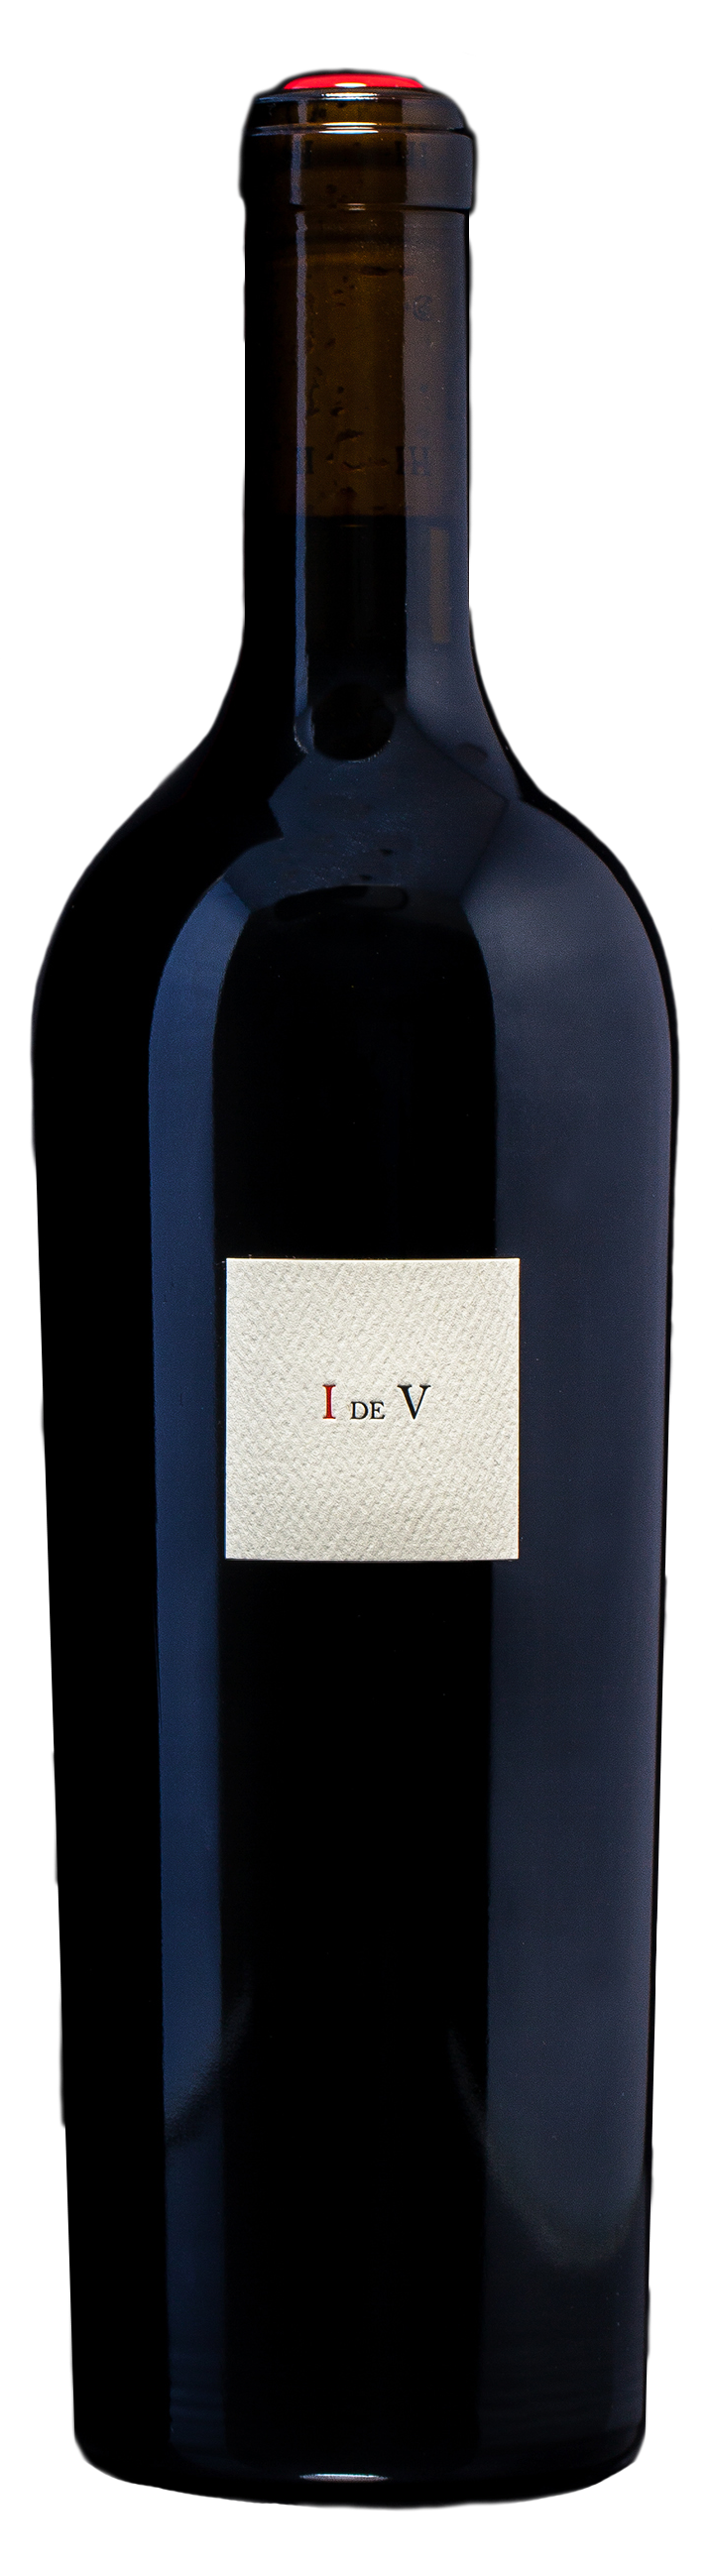 Product Image for 2016 I de V, Napa Valley 750ml